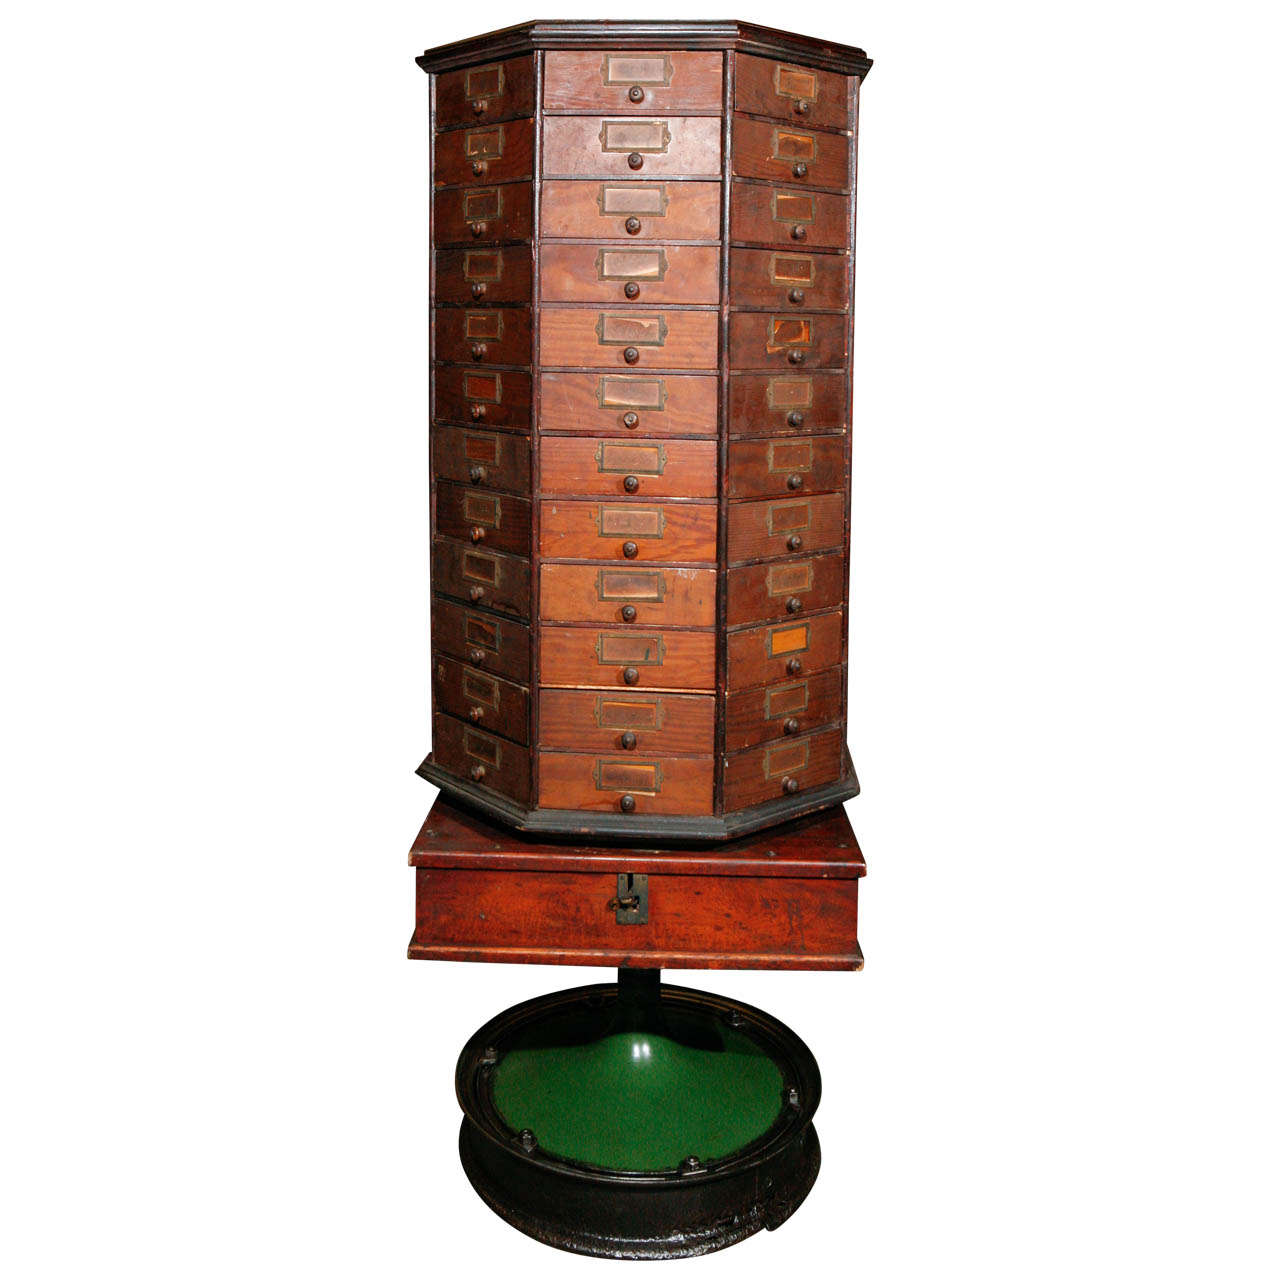 revolving chair repair in kochi swing egg cover general store cabinet on stand early 20th